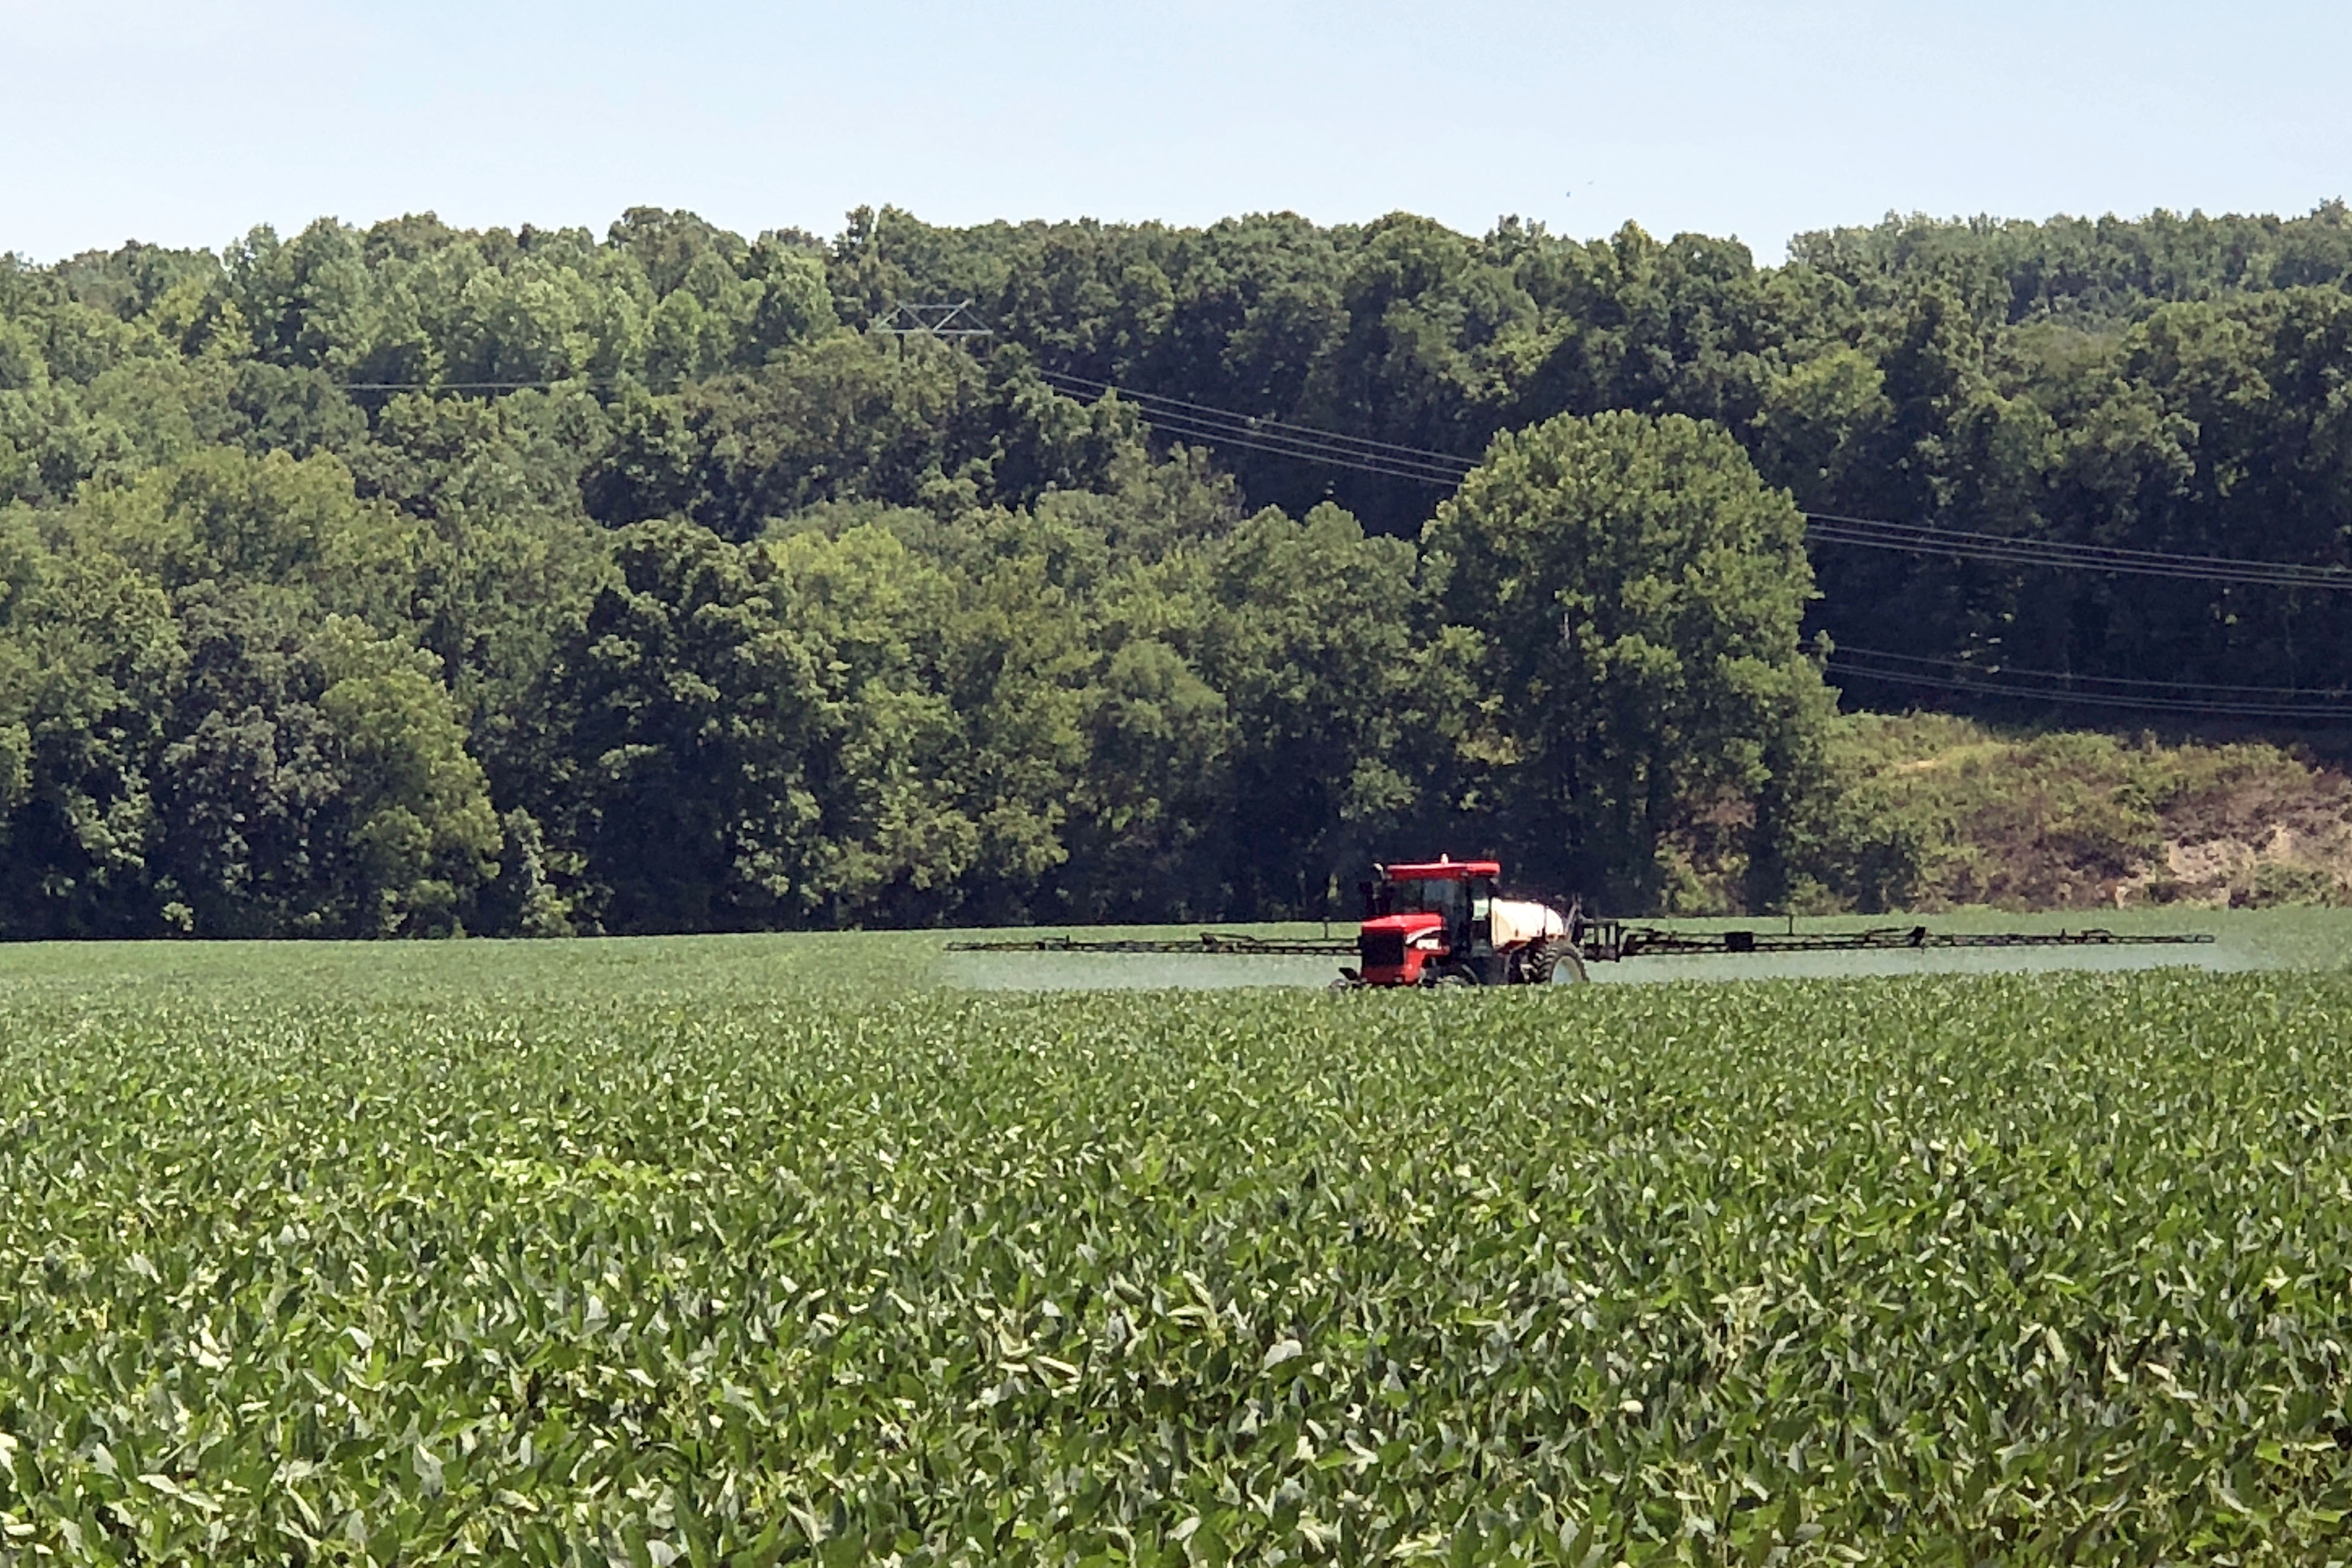 Farm-Sprayer.jpg